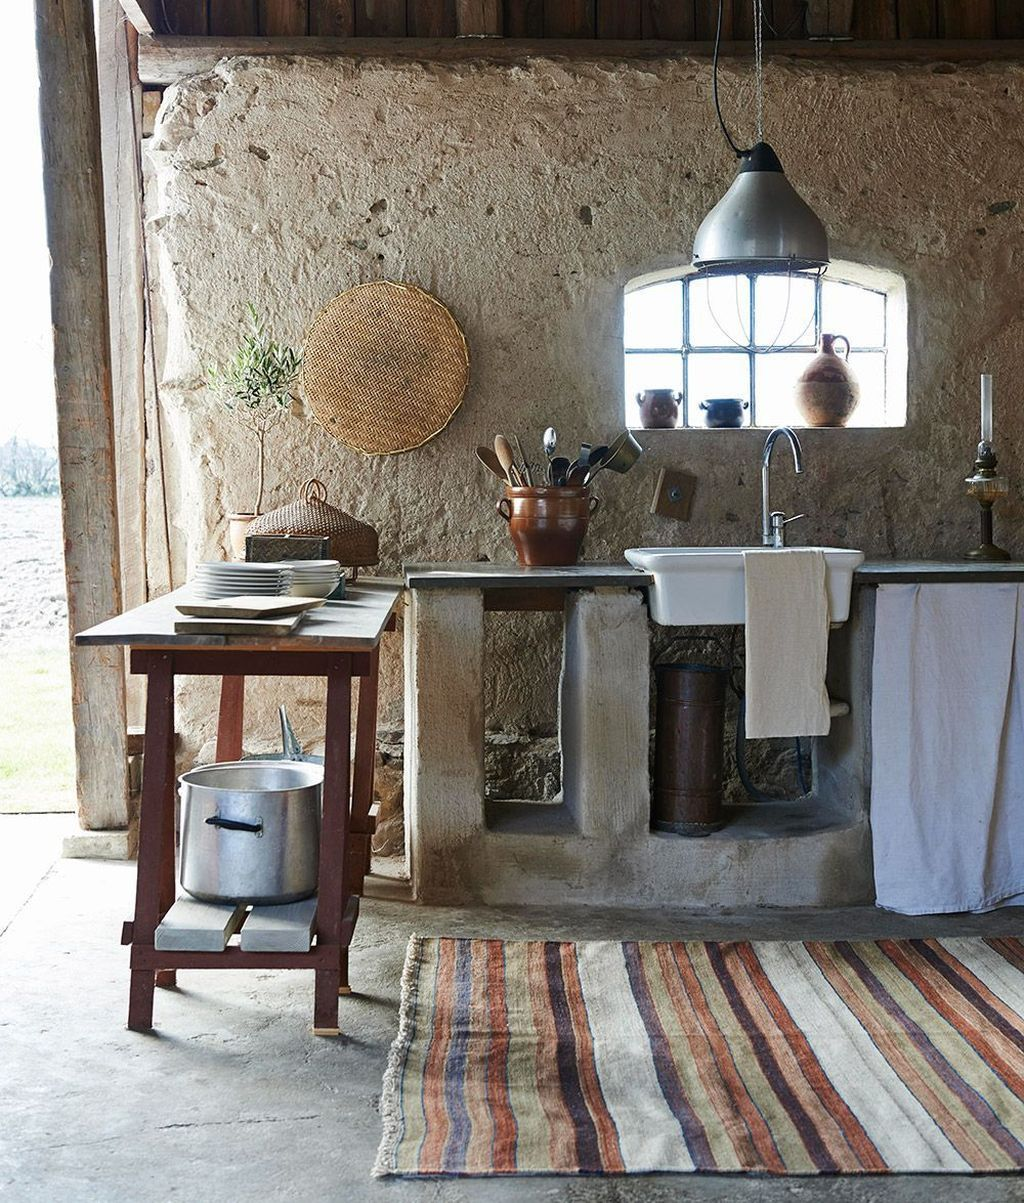 45 awesome rustic bohemian kitchen decorations ideas page 20 of 49 fathinah decor on kitchen decor themes rustic id=17995